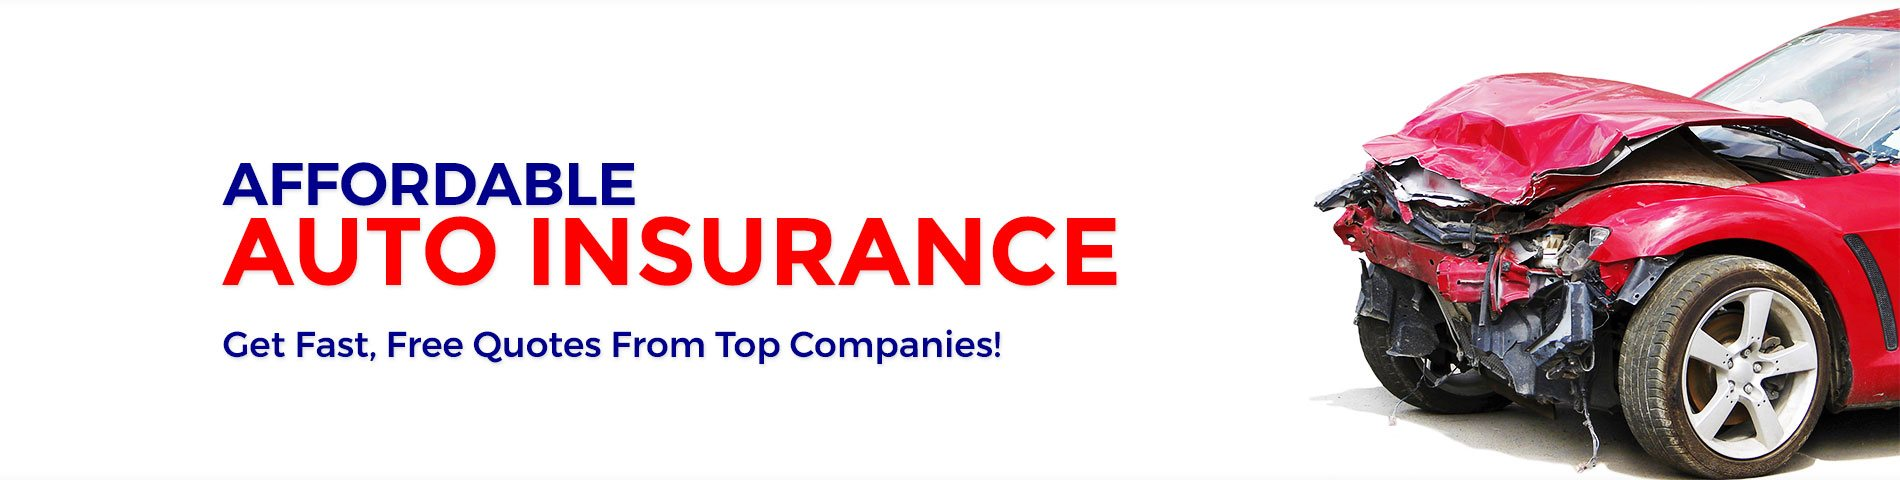 Affordable Auto Insurance >> Cheap Auto Insurance Quotes Jacksonville Affordable Insurance Of Jax